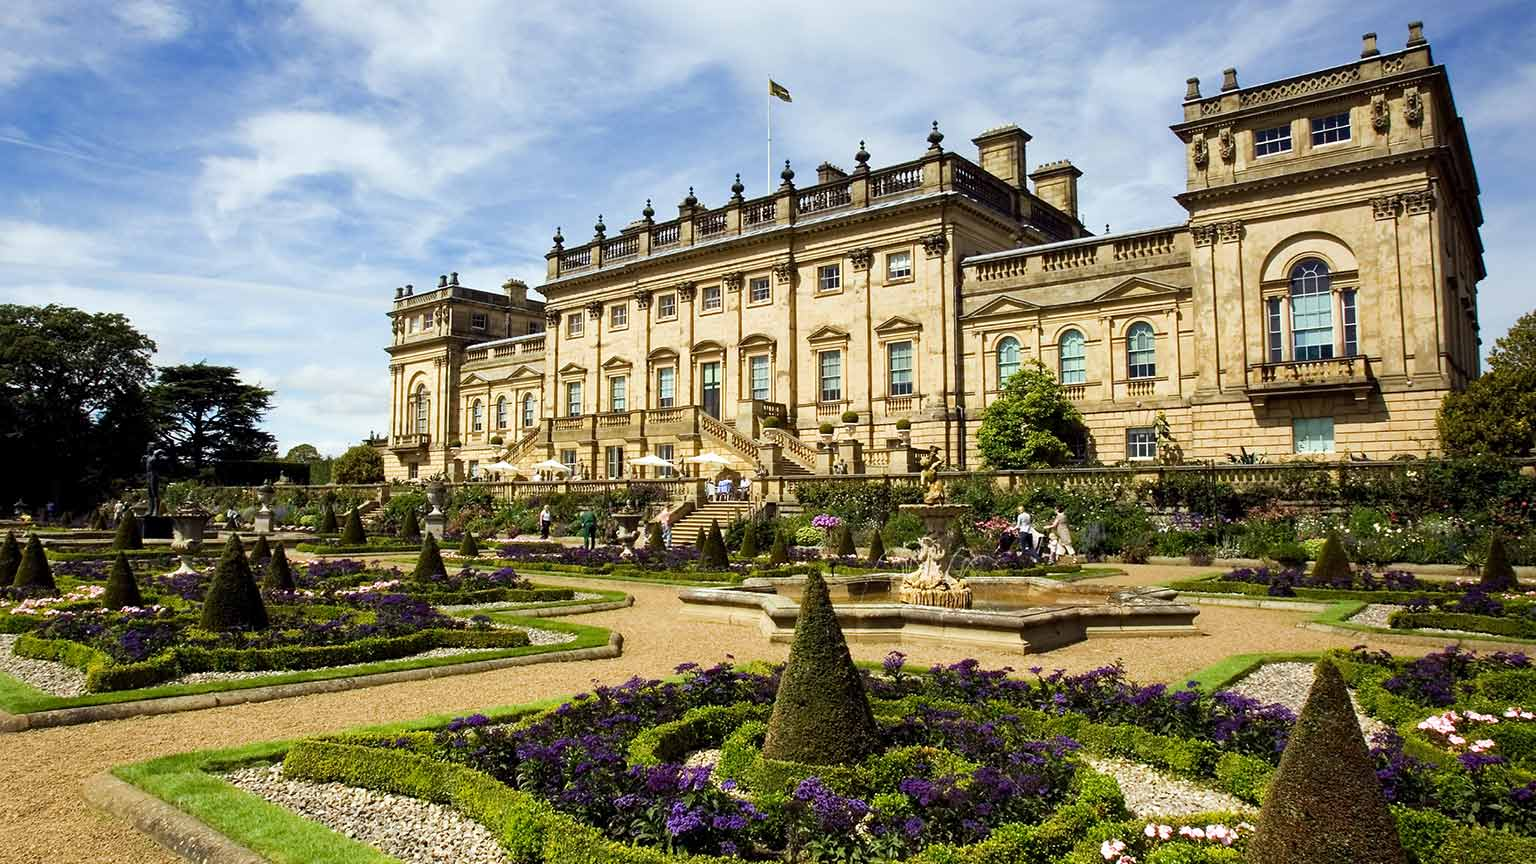 Harewood House. 50% off entry with National Art Pass -